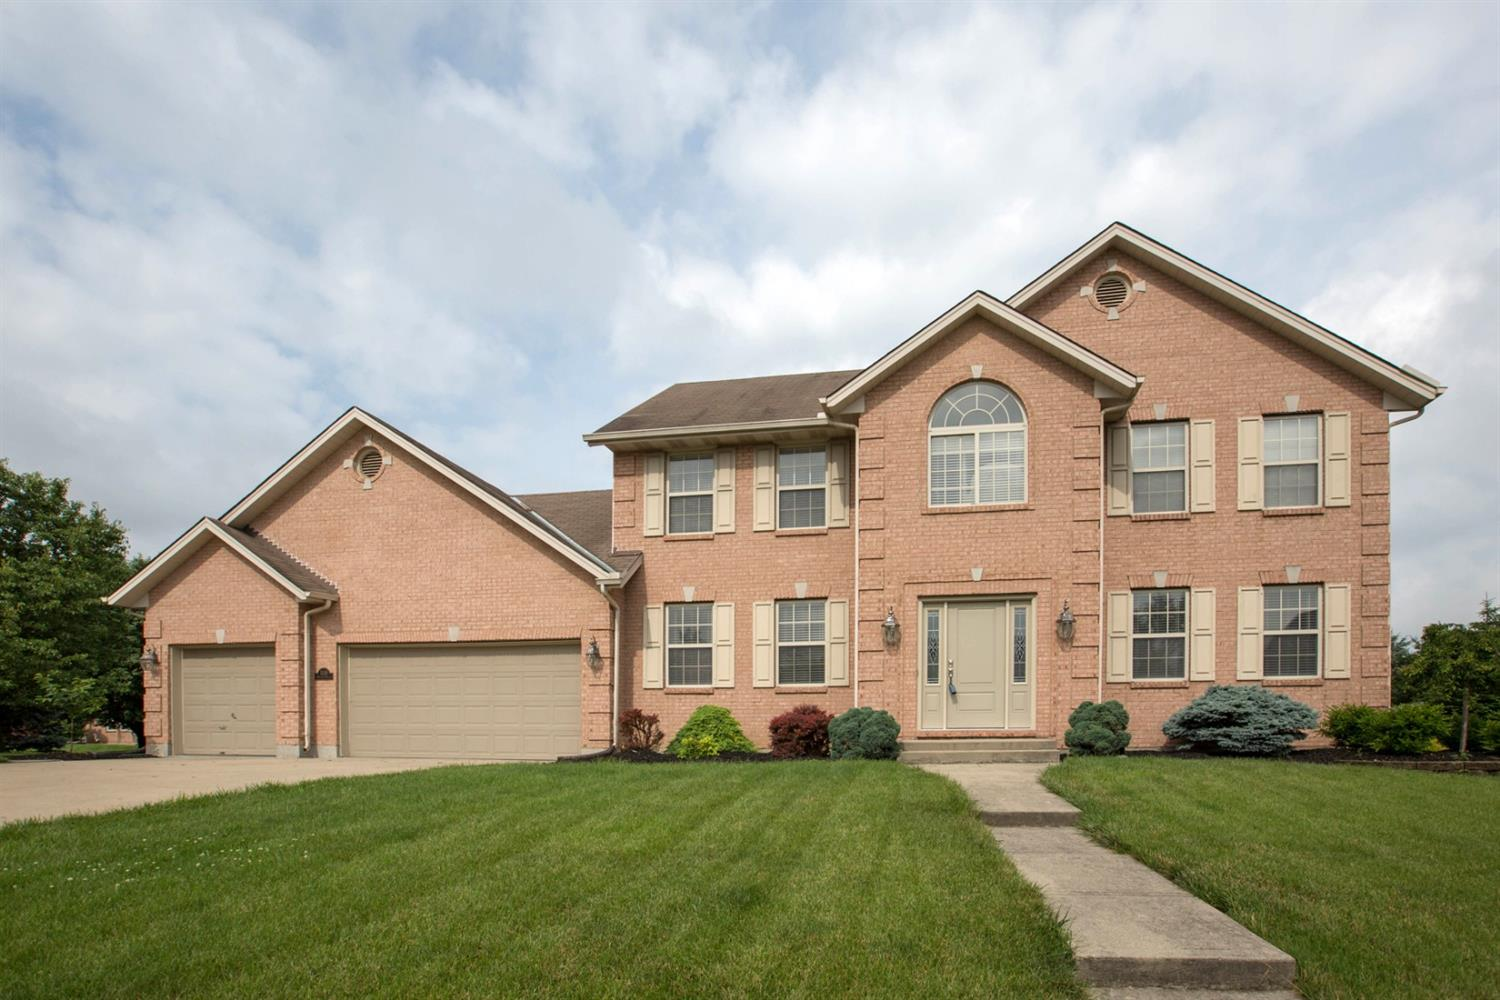 5539 Walther Dr Fairfield, OH